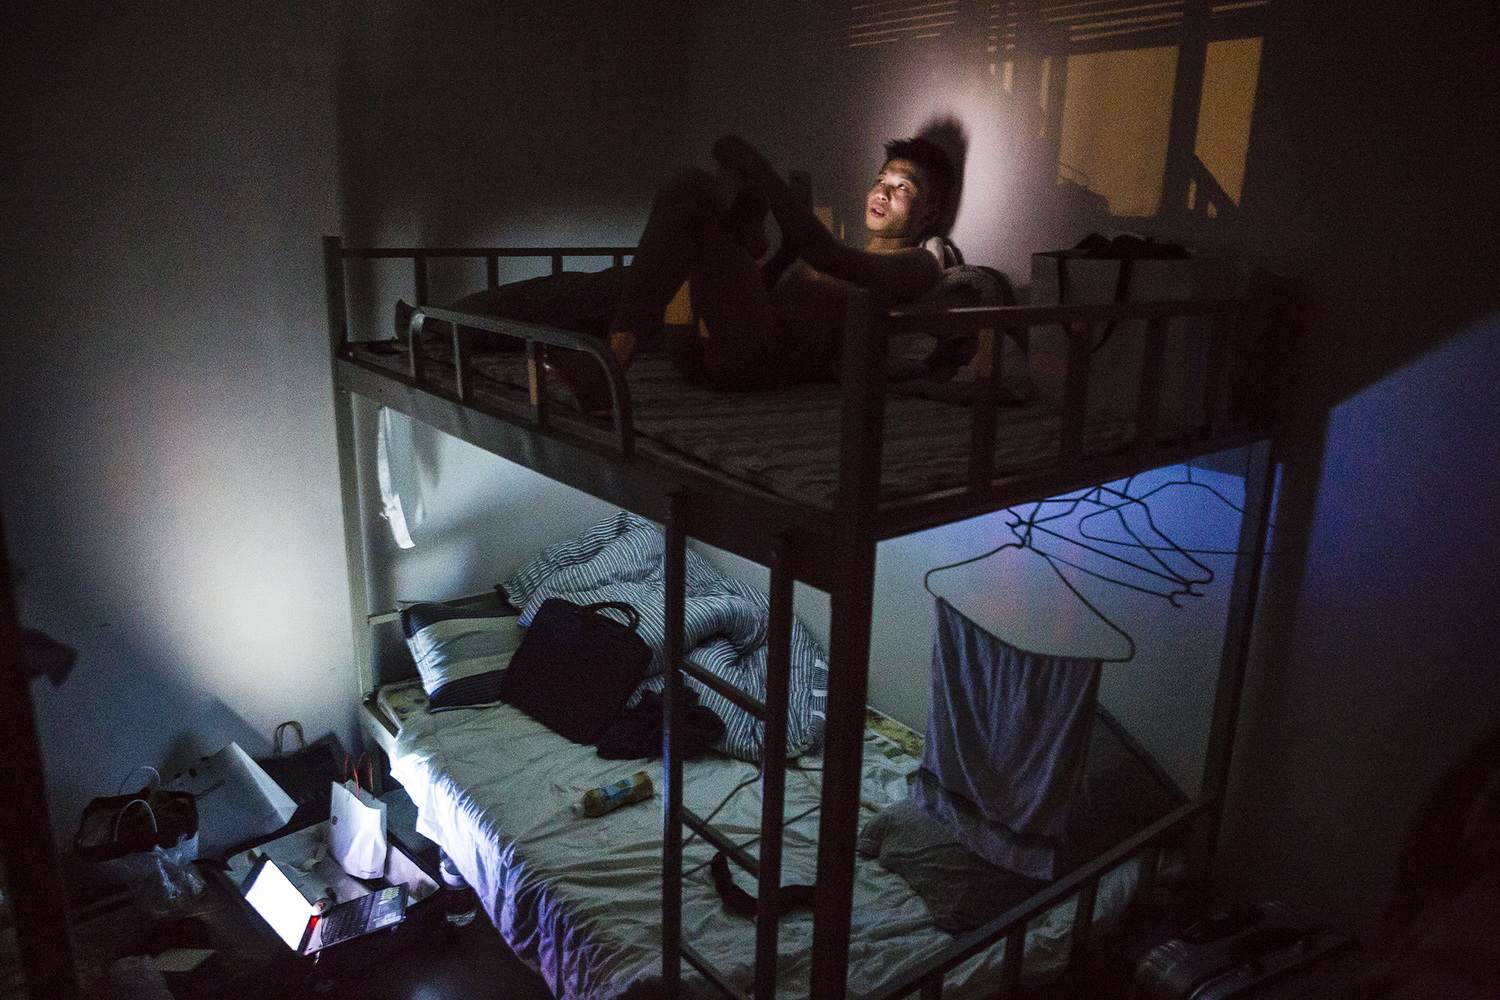 An employee at a technology company in Chongqing rests in the dormitory after the day's courses, May 18, 2015. He said he couldn't find a girlfriend because he was too shy towards women. He participated in Puamap because his family wanted him to get married.